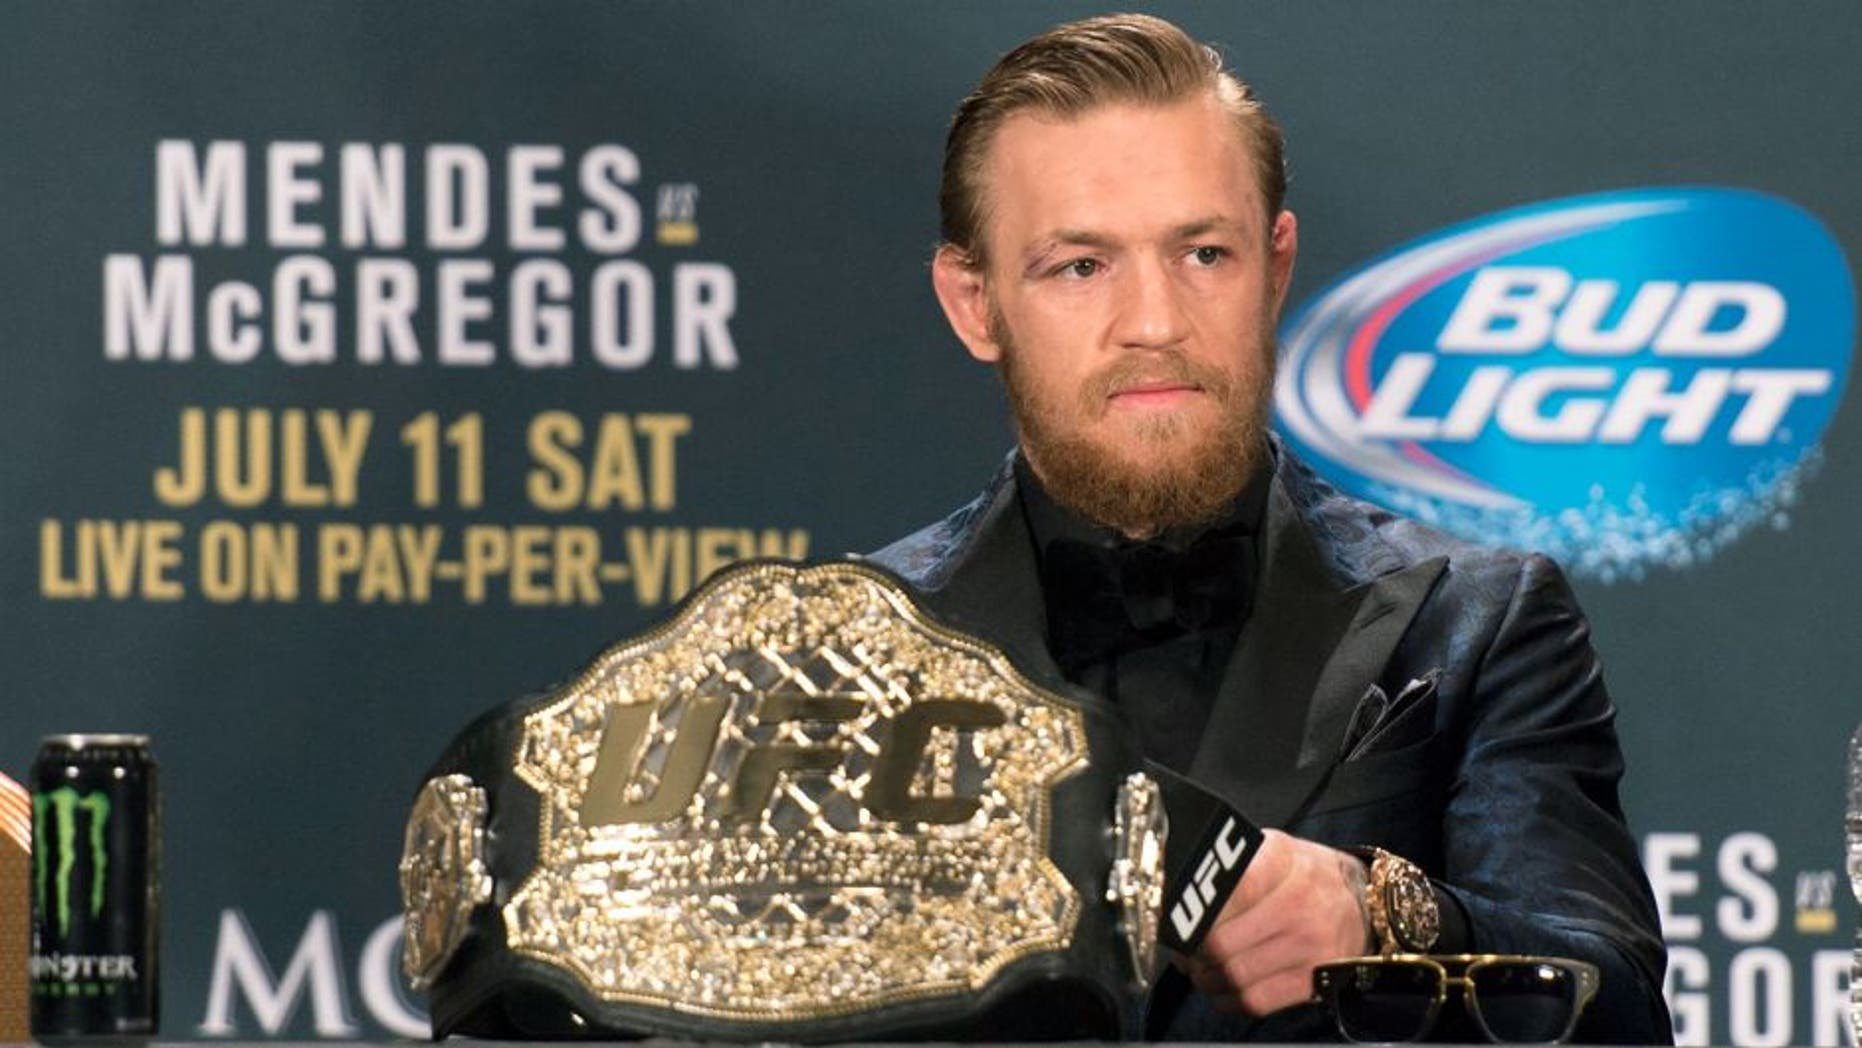 LAS VEGAS, NV - JULY 11: UFC interim featherweight champion Conor McGregor interacts with the media during the UFC 189 post fight press conference at the MGM Grand Garden Arena on July 11, 2015 in Las Vegas, Nevada. (Photo by Jeff Bottari/Zuffa LLC/Zuffa LLC via Getty Images)